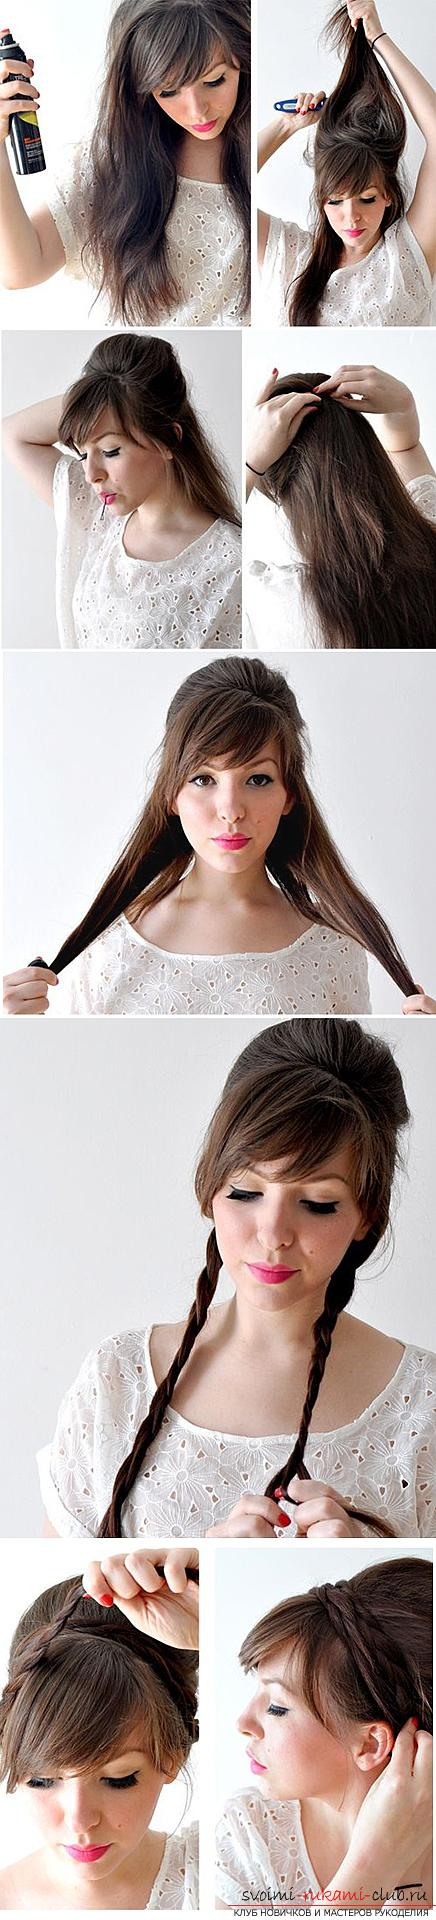 How to beautifully and quickly braid long hair at home with their own hands, step by step photos and description. Photo №7